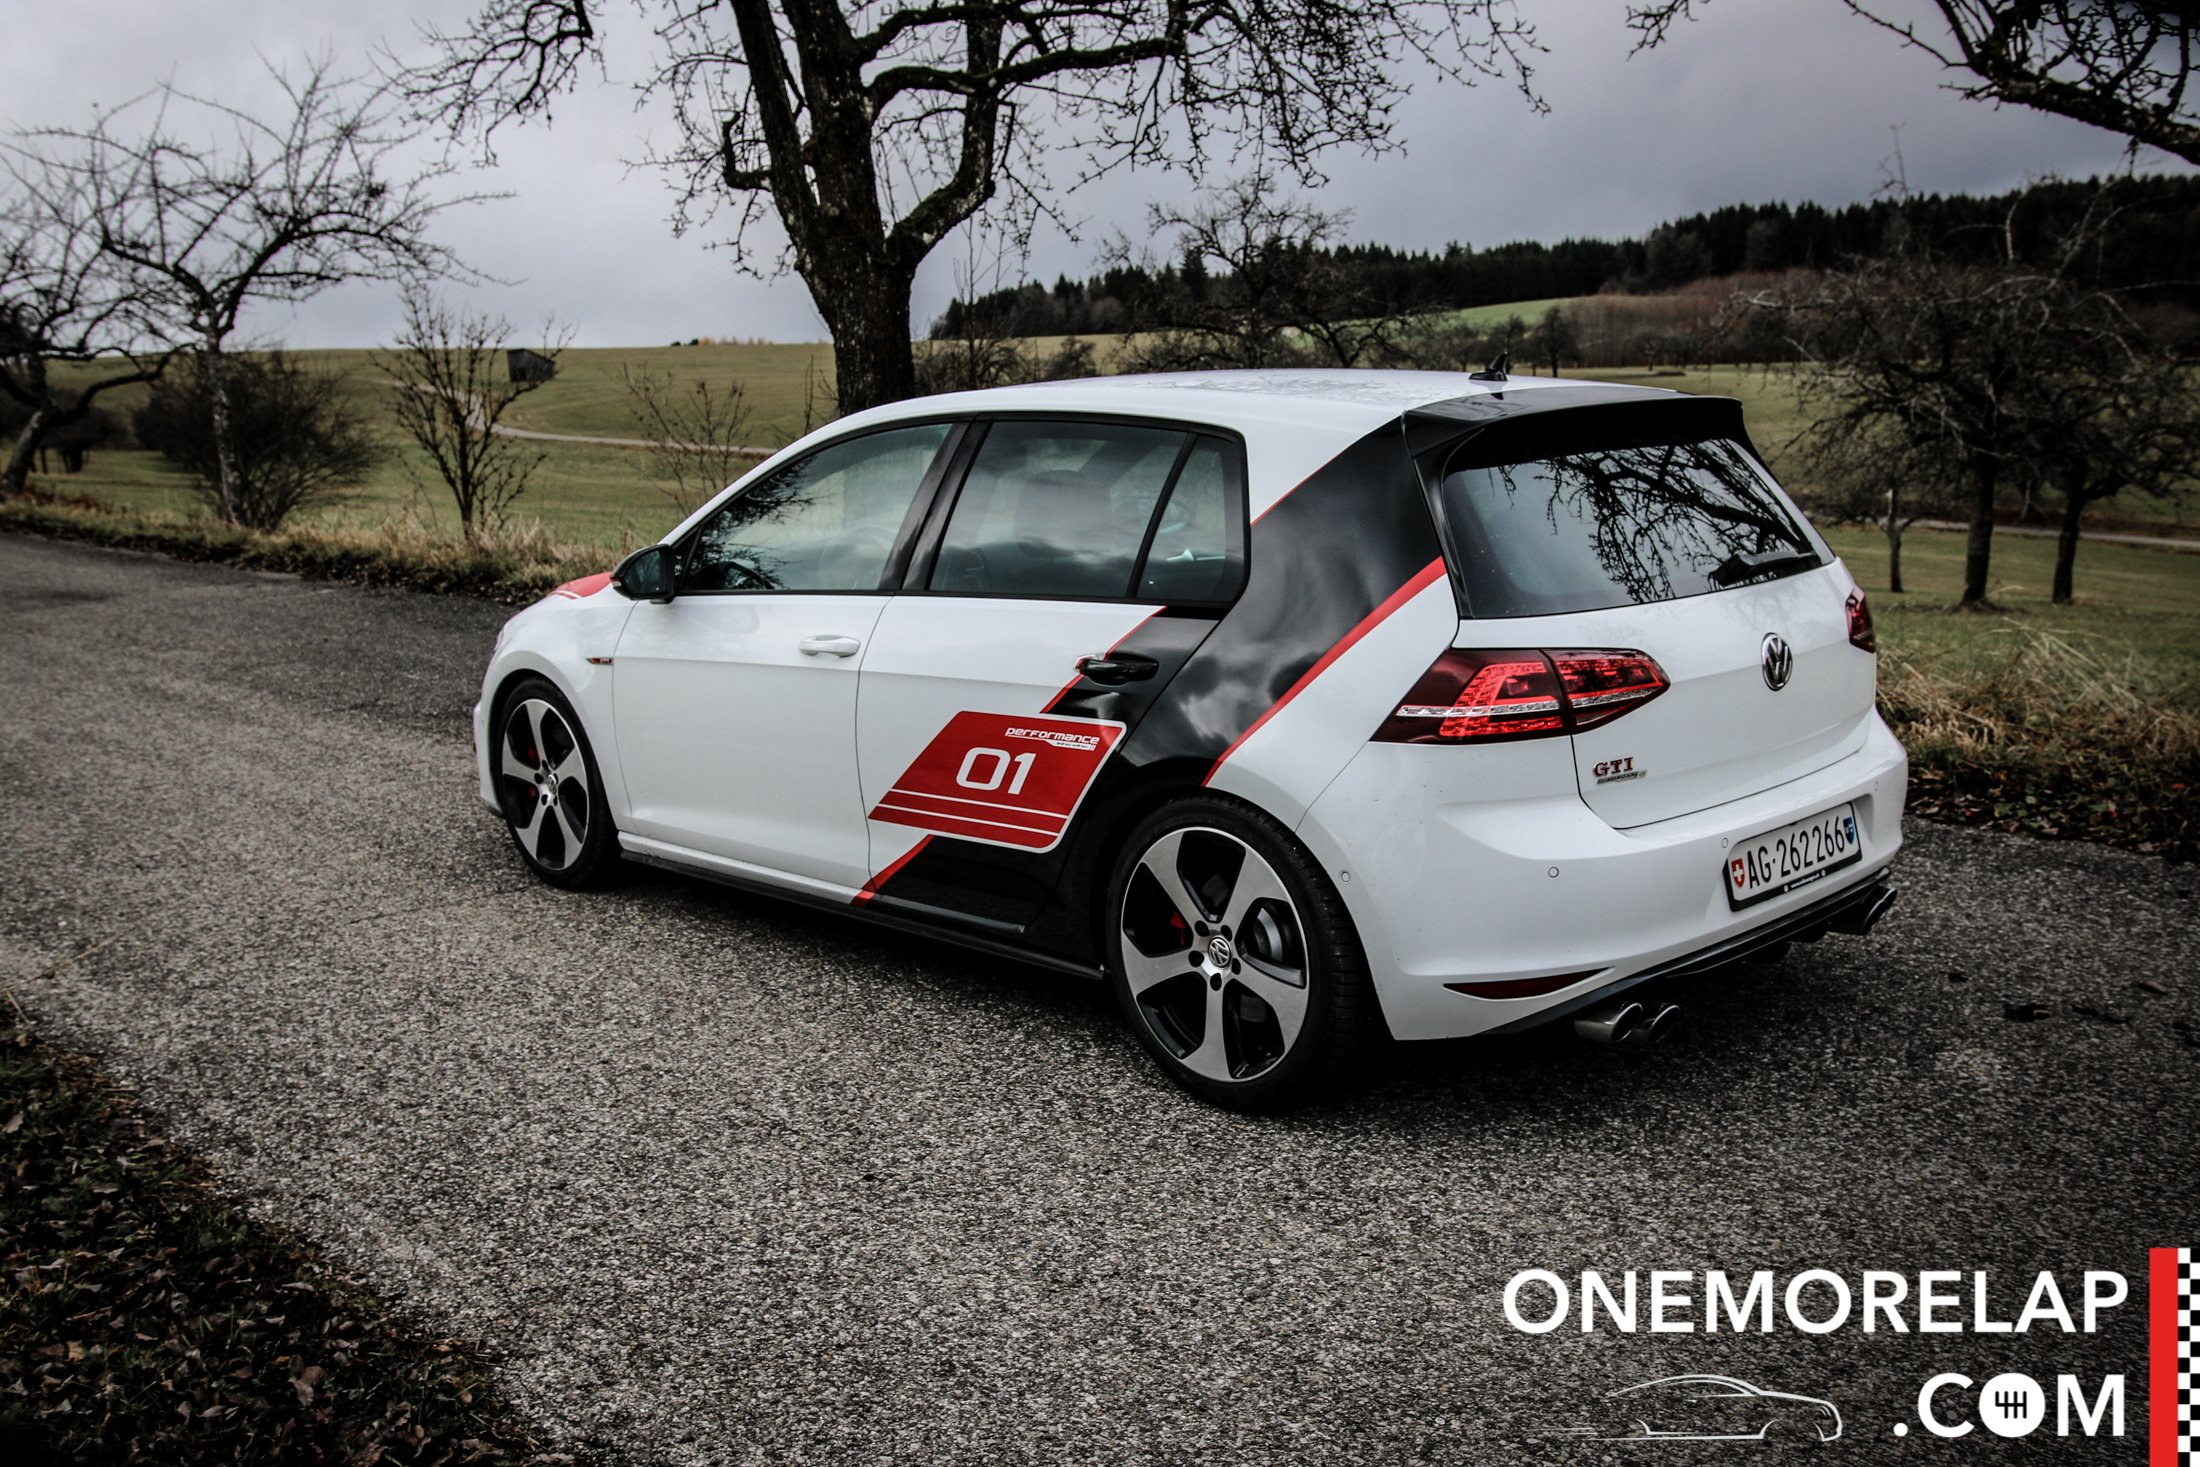 VW Golf GTI Performance Limited Edition